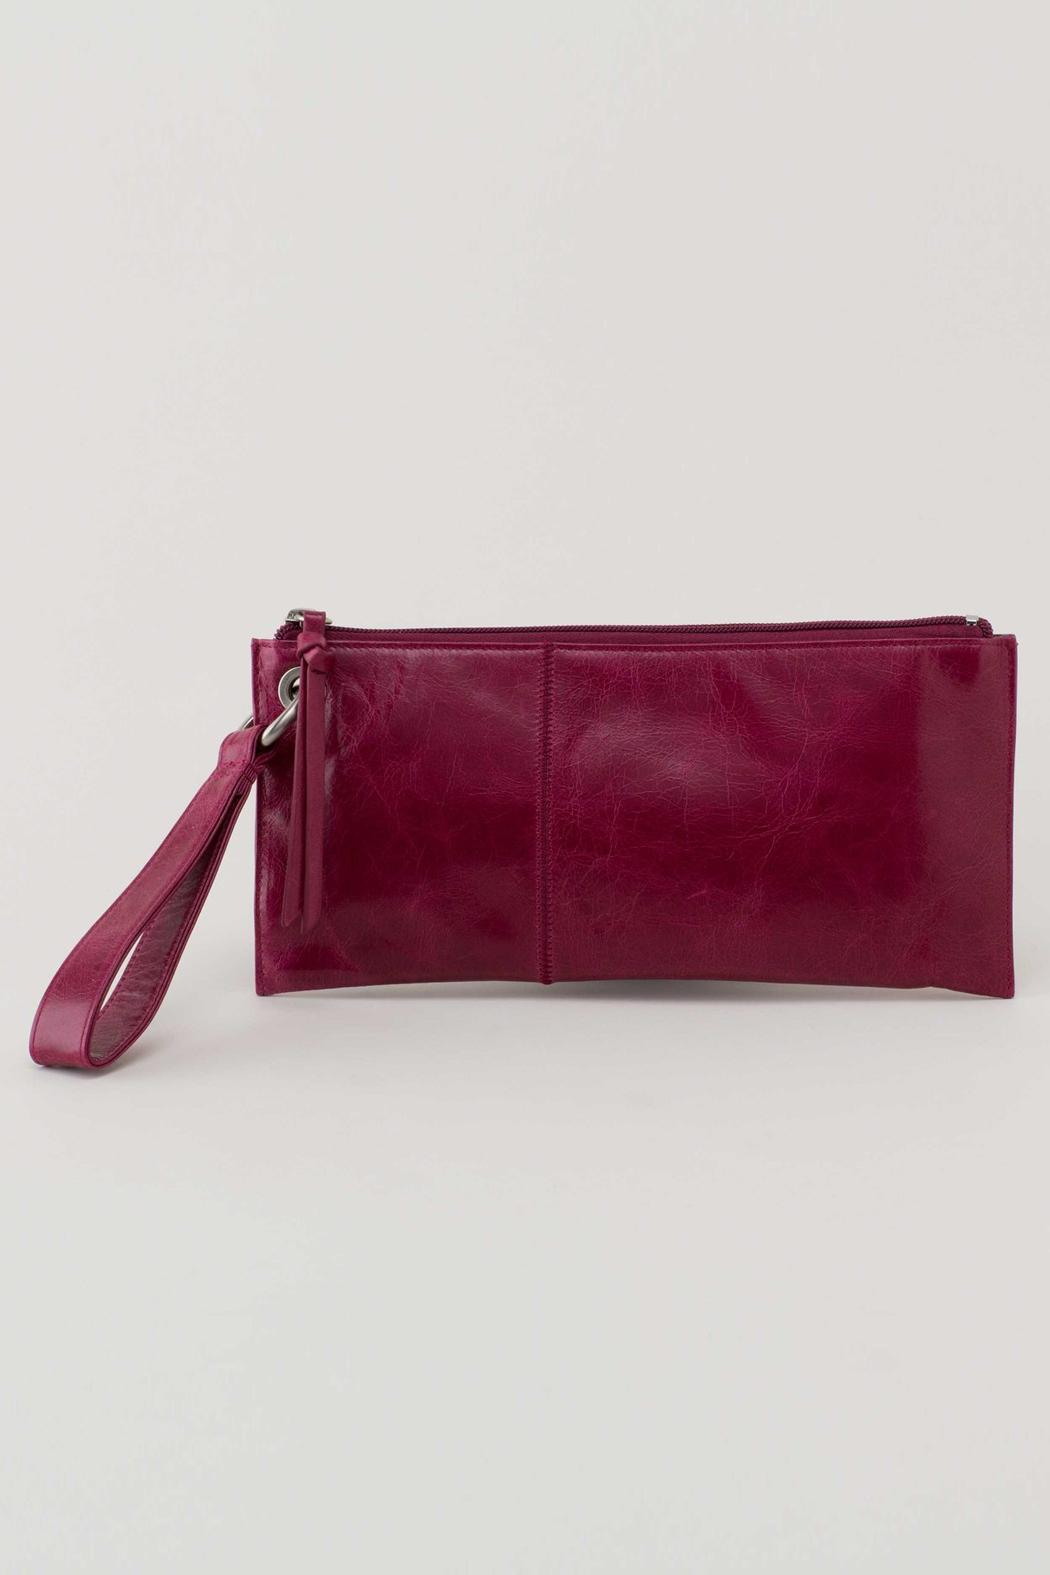 VIDA Statement Clutch - Hand In Hand by VIDA blntVto2w